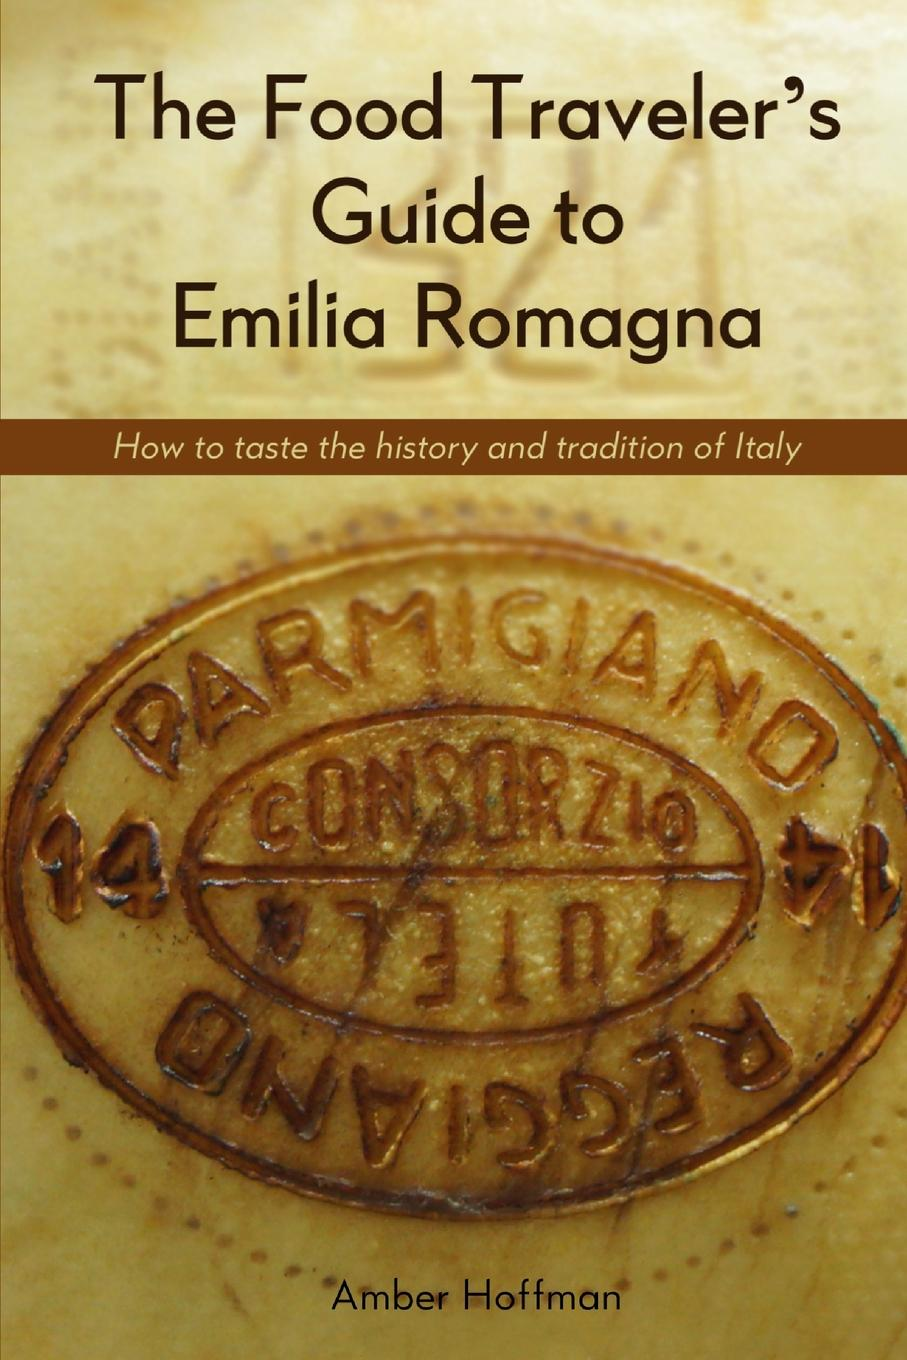 Hoffman Amber The Food Traveler.s Guide to Emilia Romagna. Tasting the history and tradition of Italy